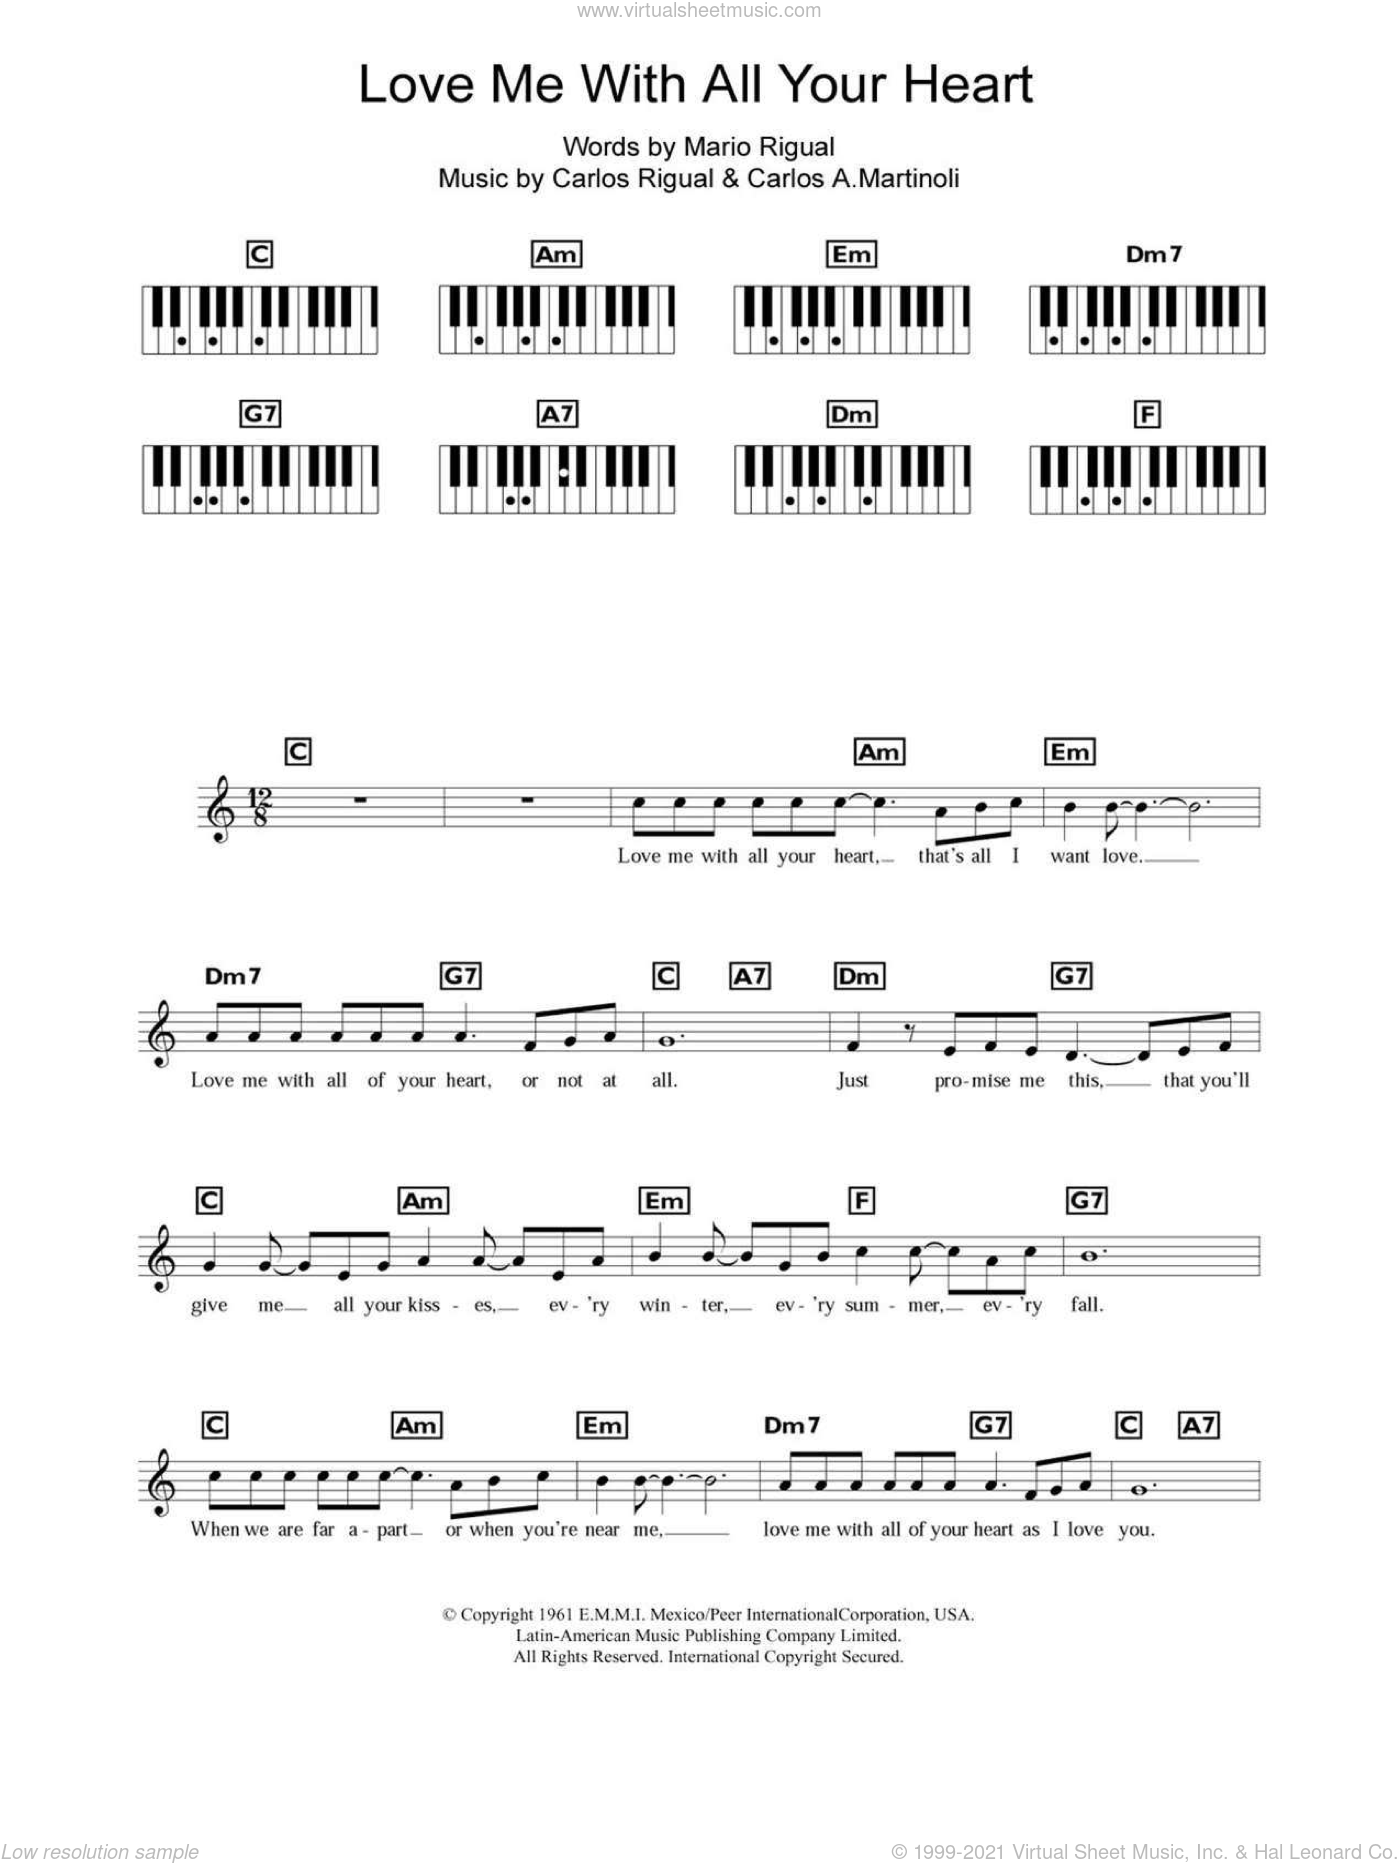 Love Me With All Your Heart (Cuando Calienta El Sol) sheet music for piano solo (chords, lyrics, melody) by Mario Rigual